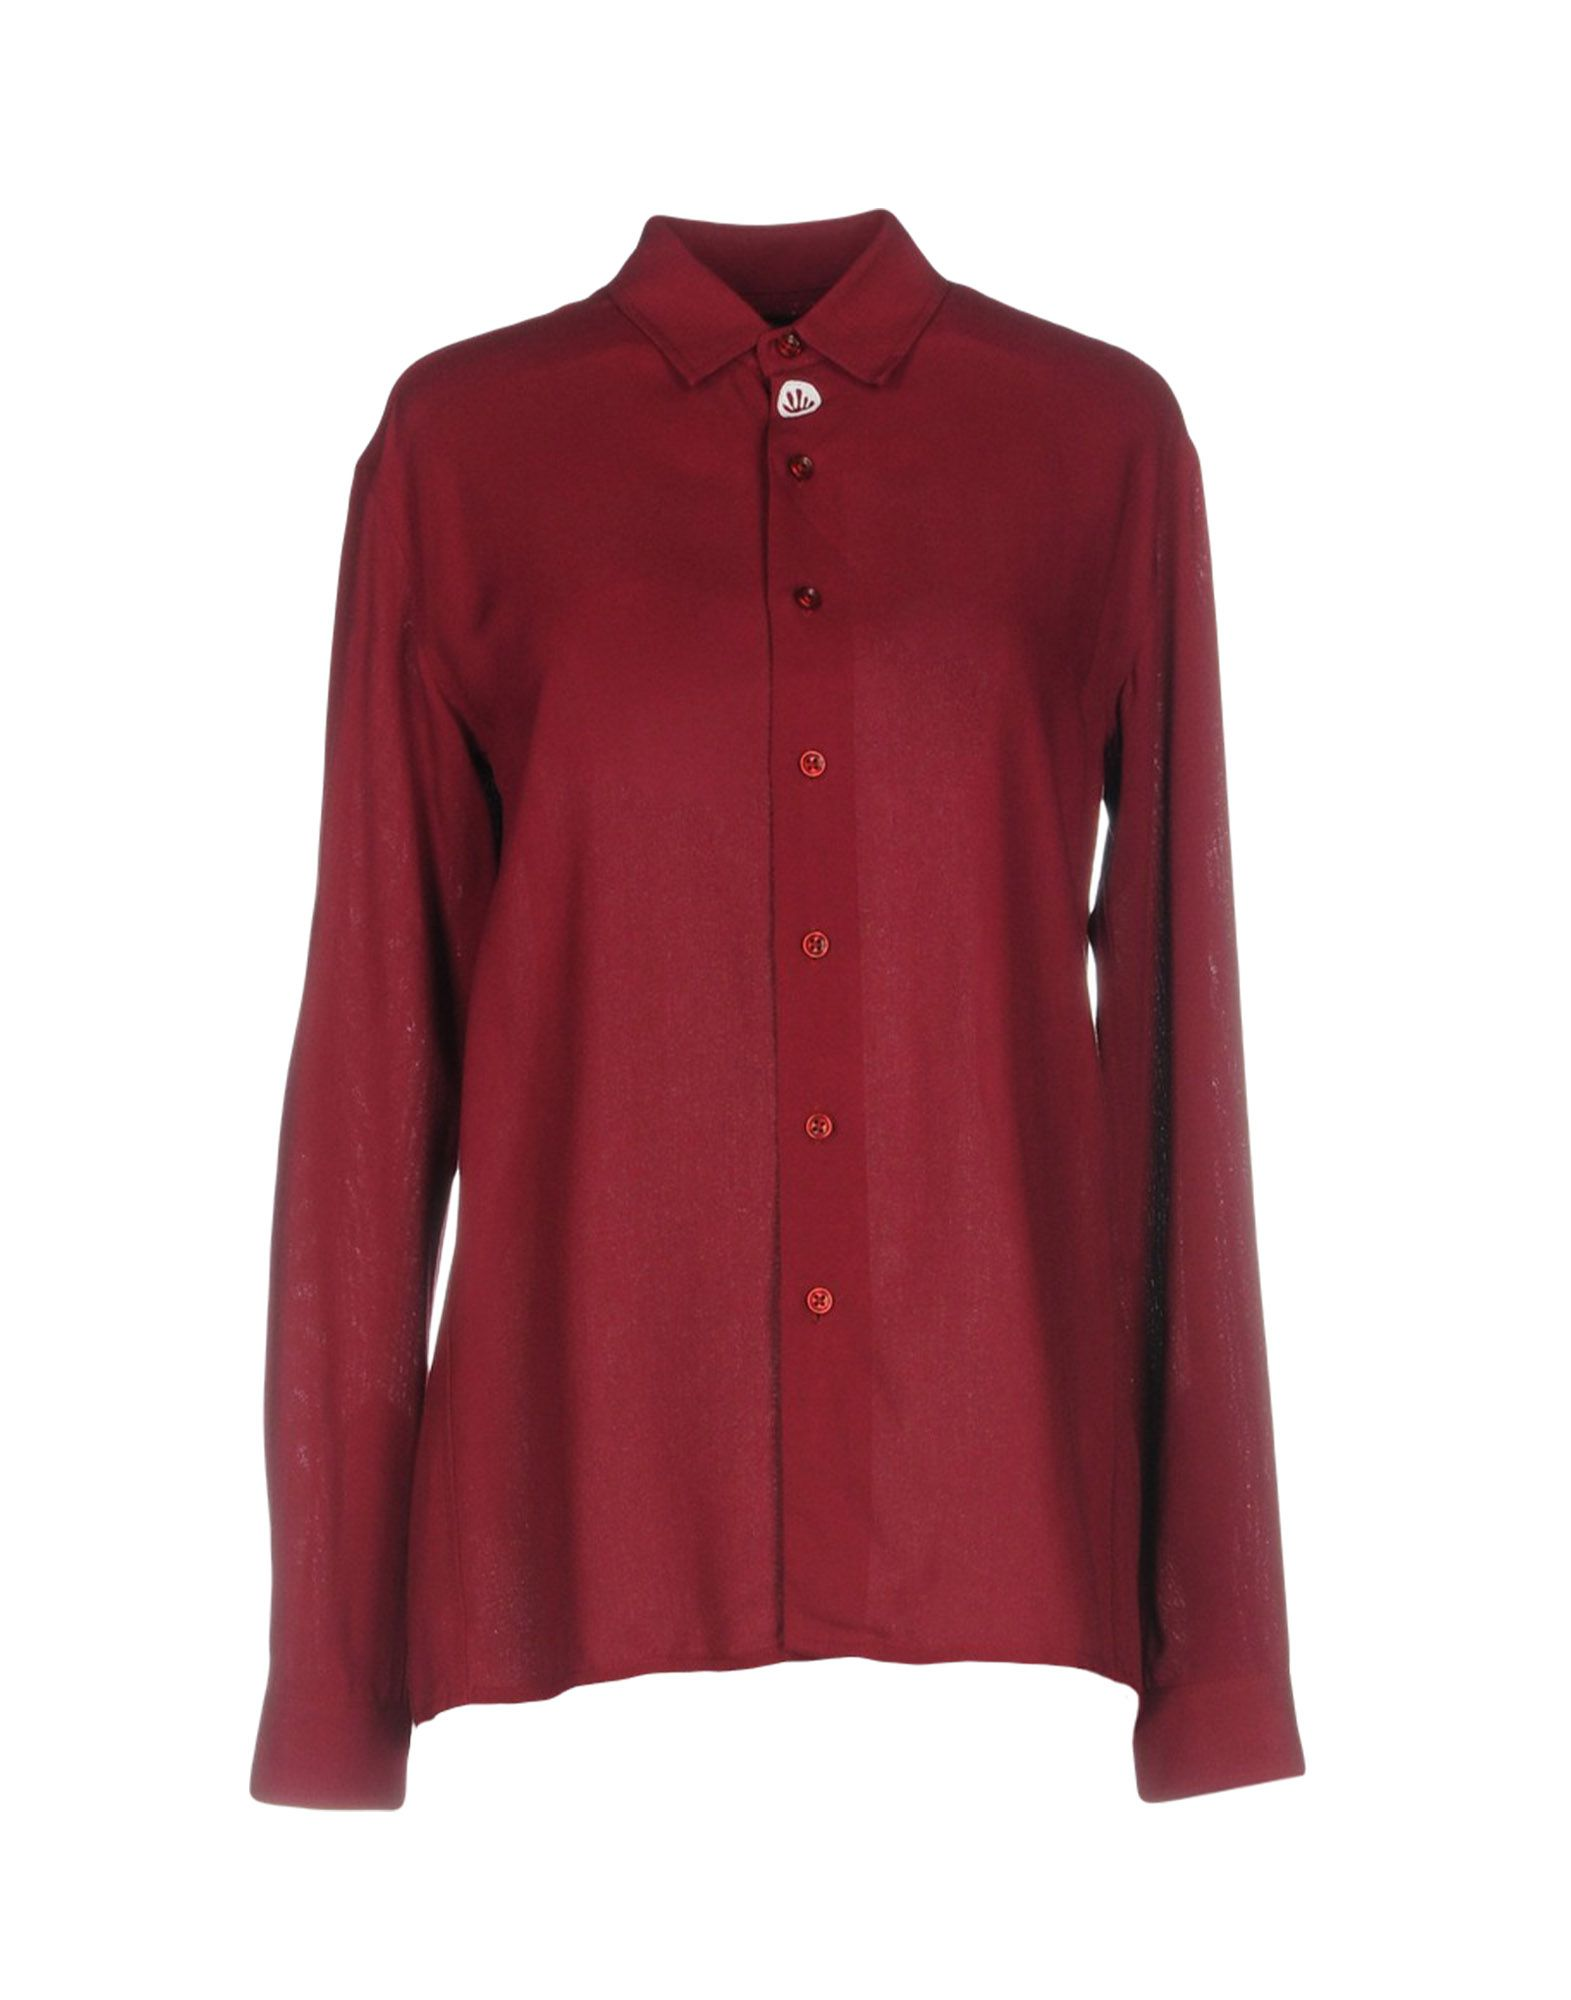 BRUTA Solid Color Shirts & Blouses in Maroon